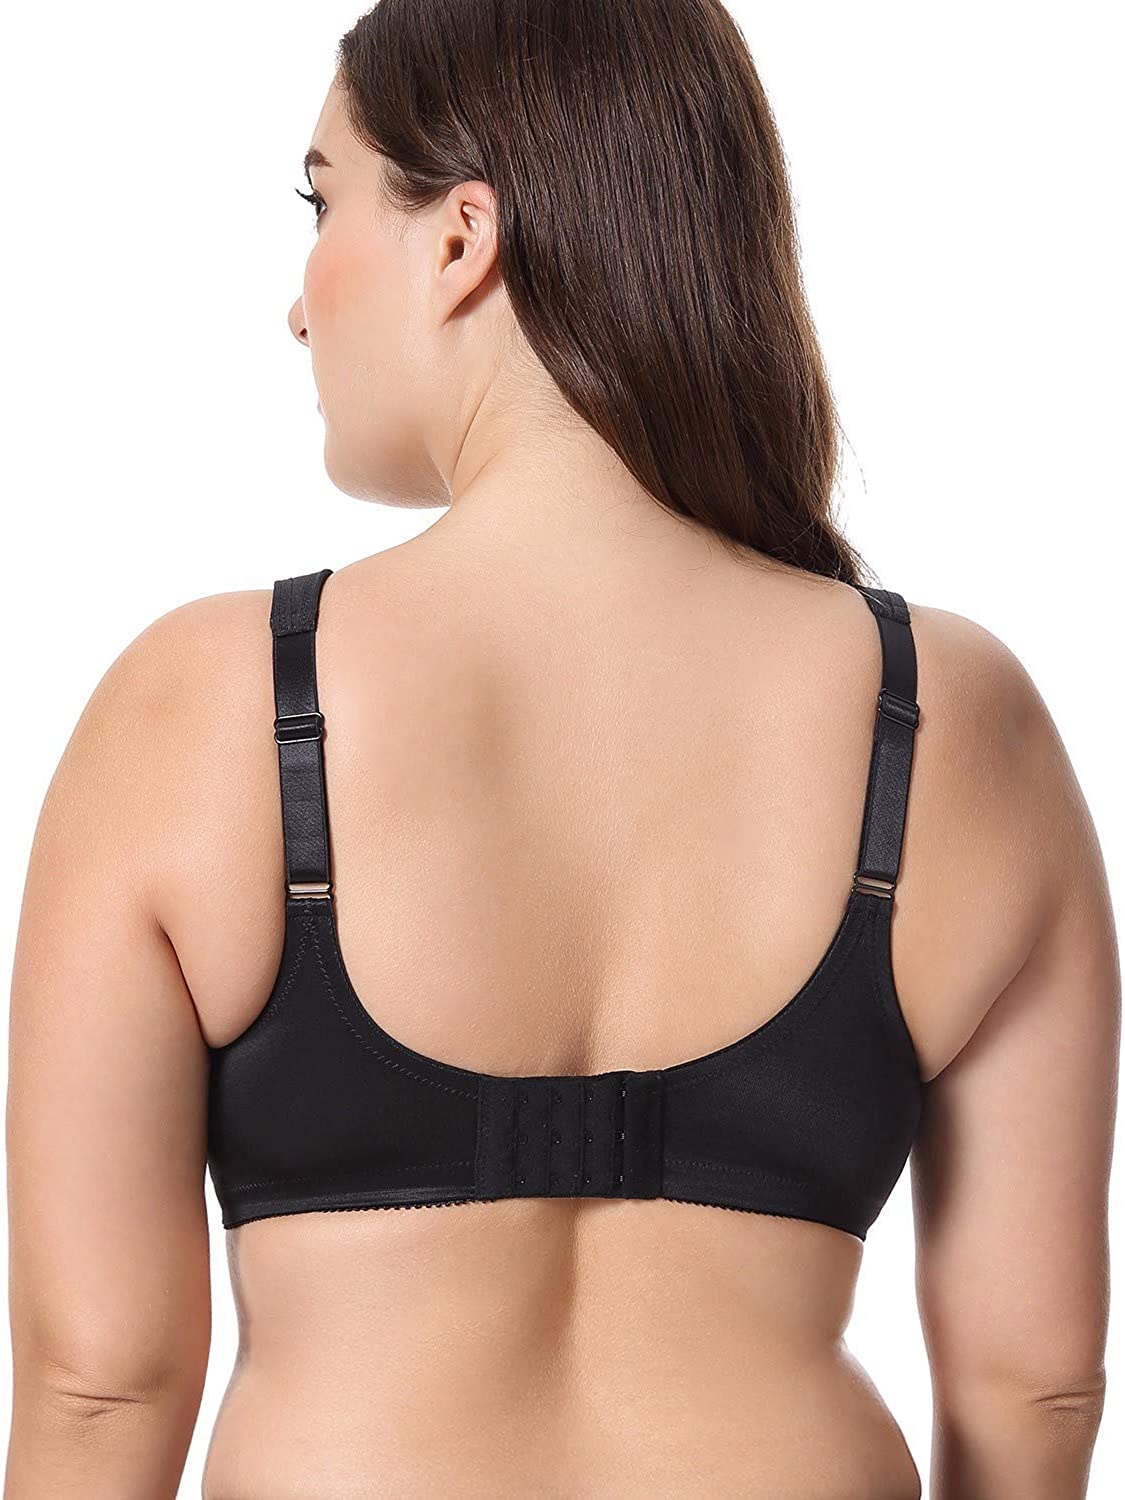 LAUDINE Womens Unlined Full Figure Support Wirefree Minimizer Plus Size Bra